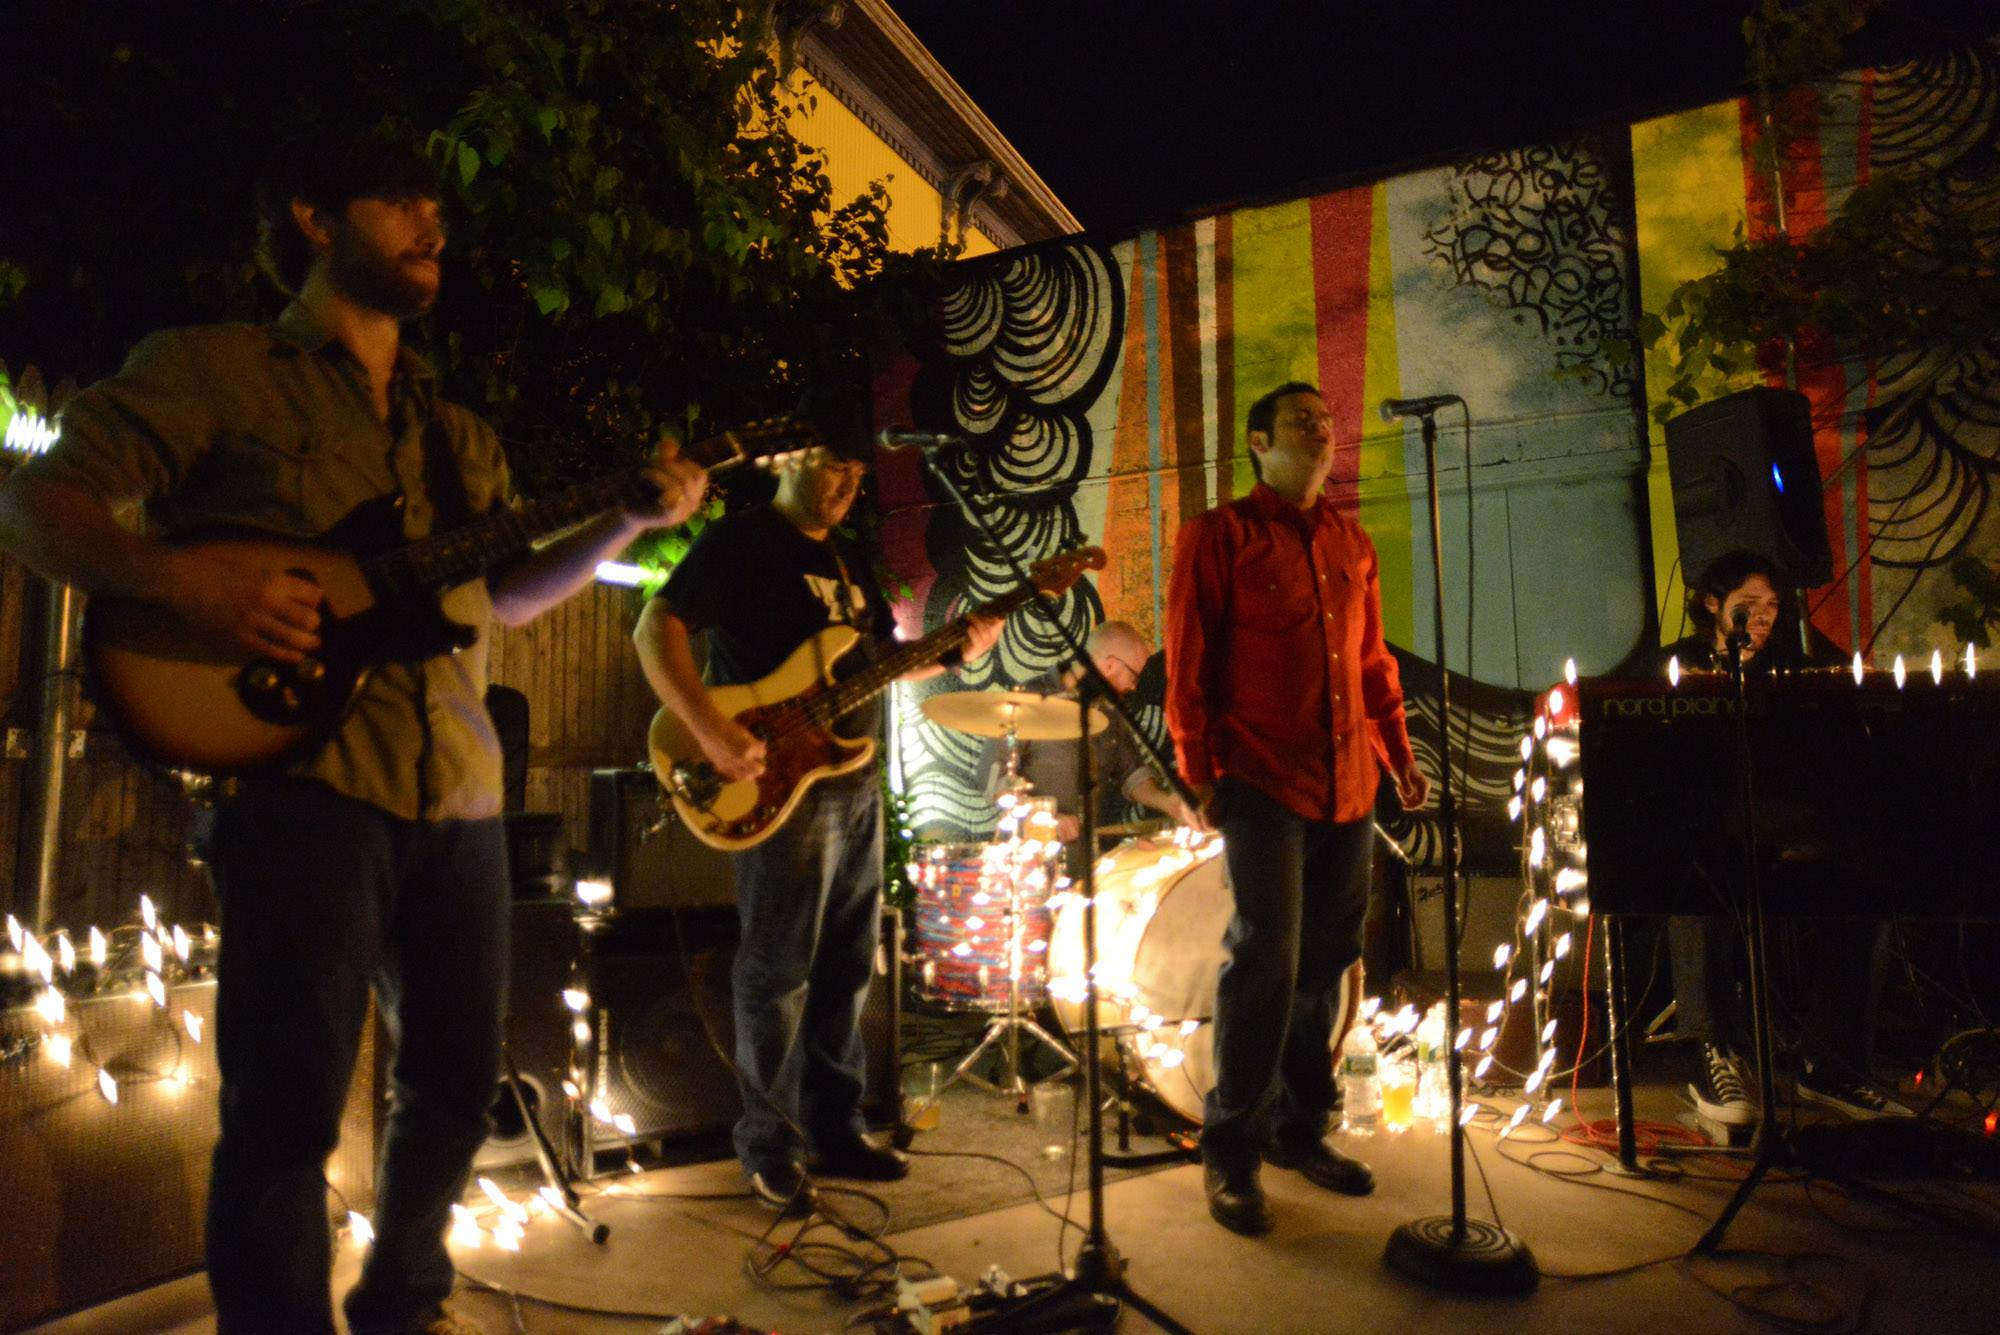 http://www.imoveilive.com/wp-content/uploads/2015/07/Band-Playing-Music.jpg